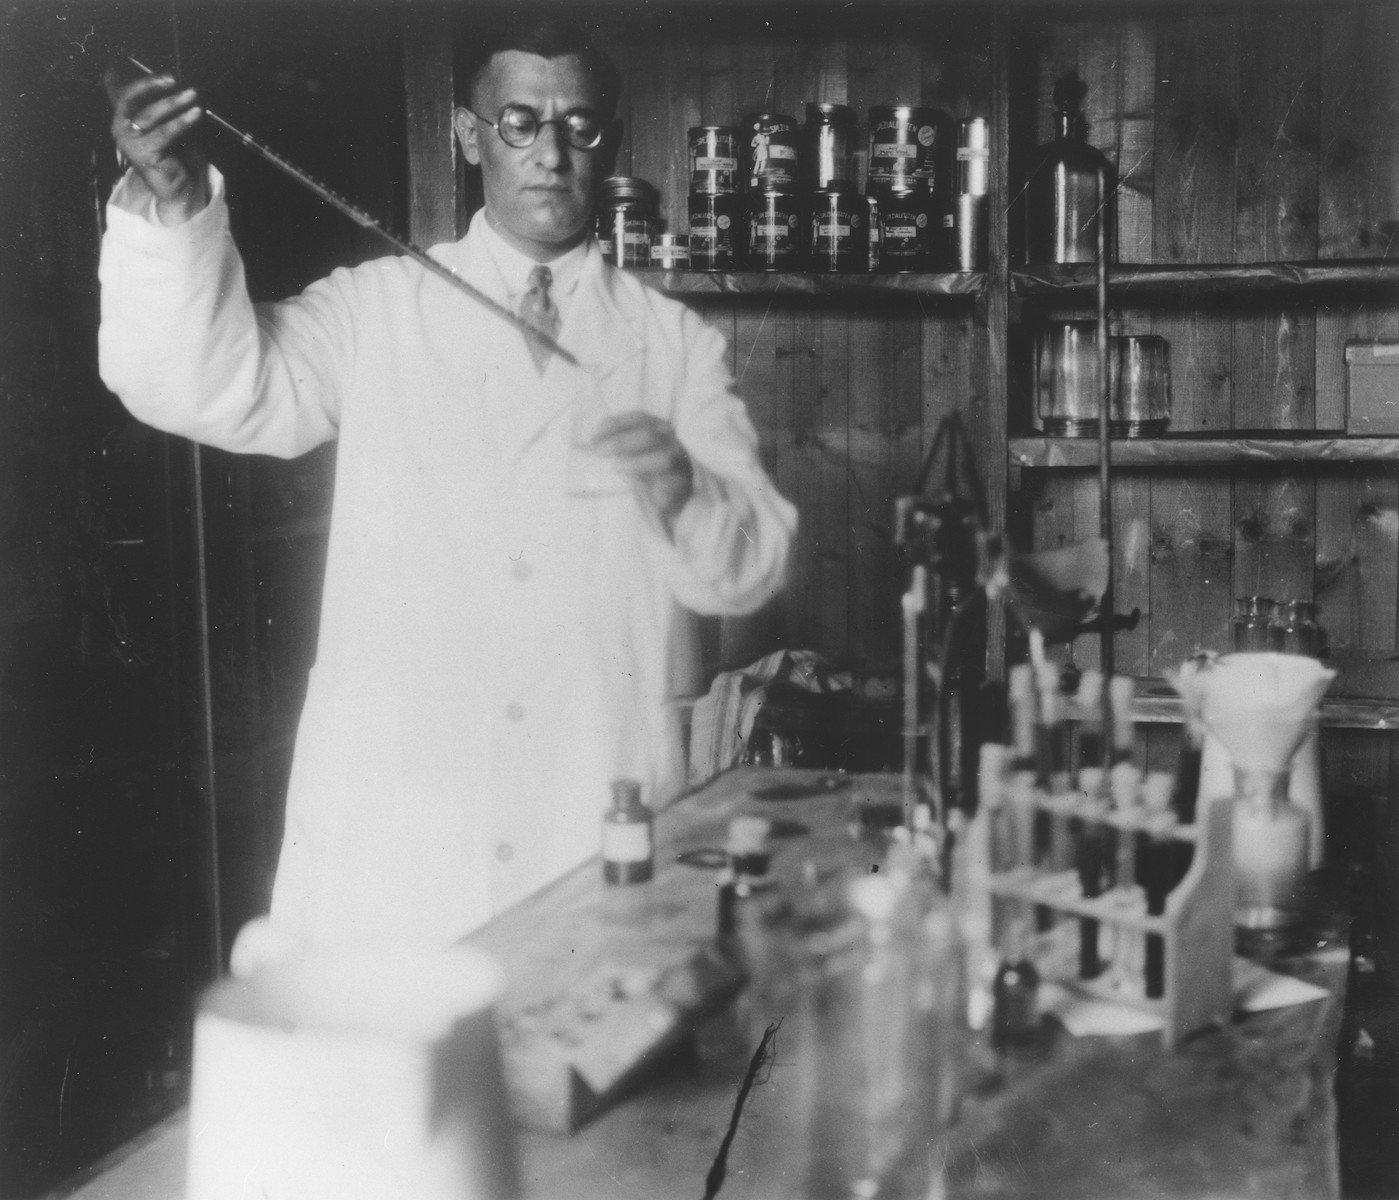 Cecil Gelbart at work in his chemistry laboratory in Hamburg, Germany.